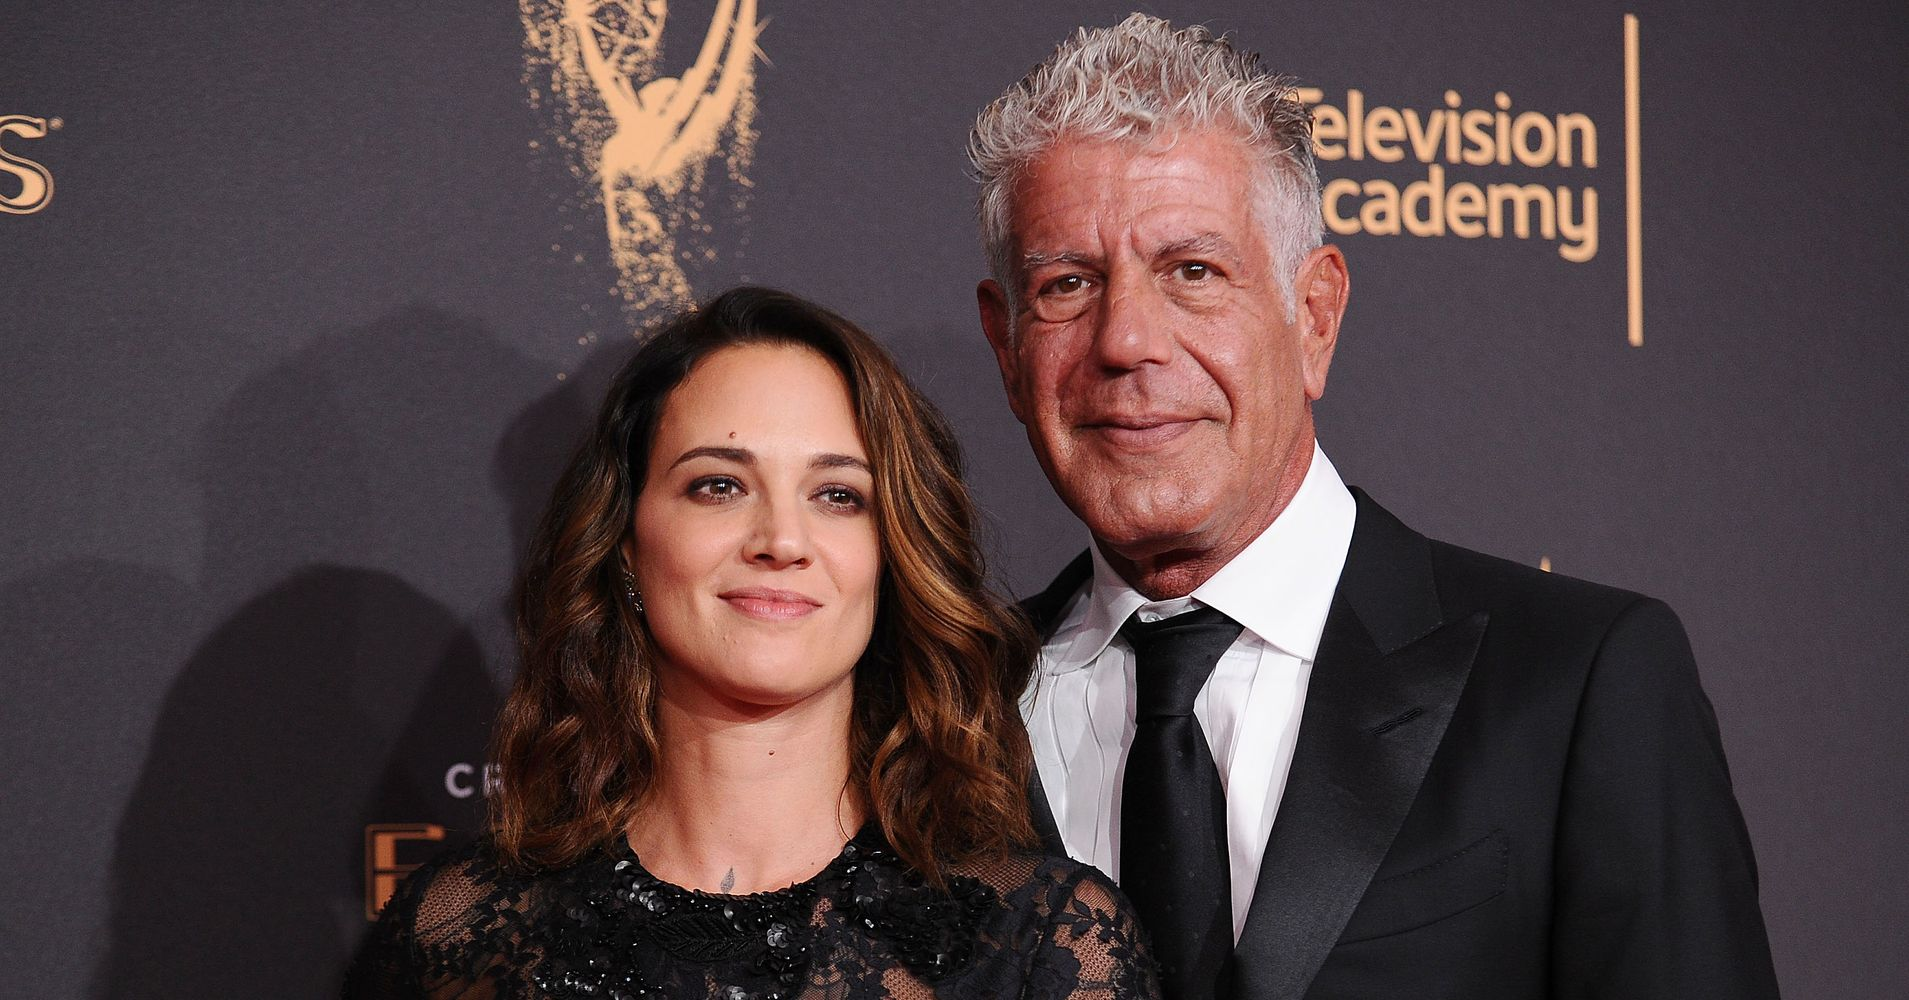 Asia Argento Shares Heartbreaking Statement On Anthony Bourdain's Death